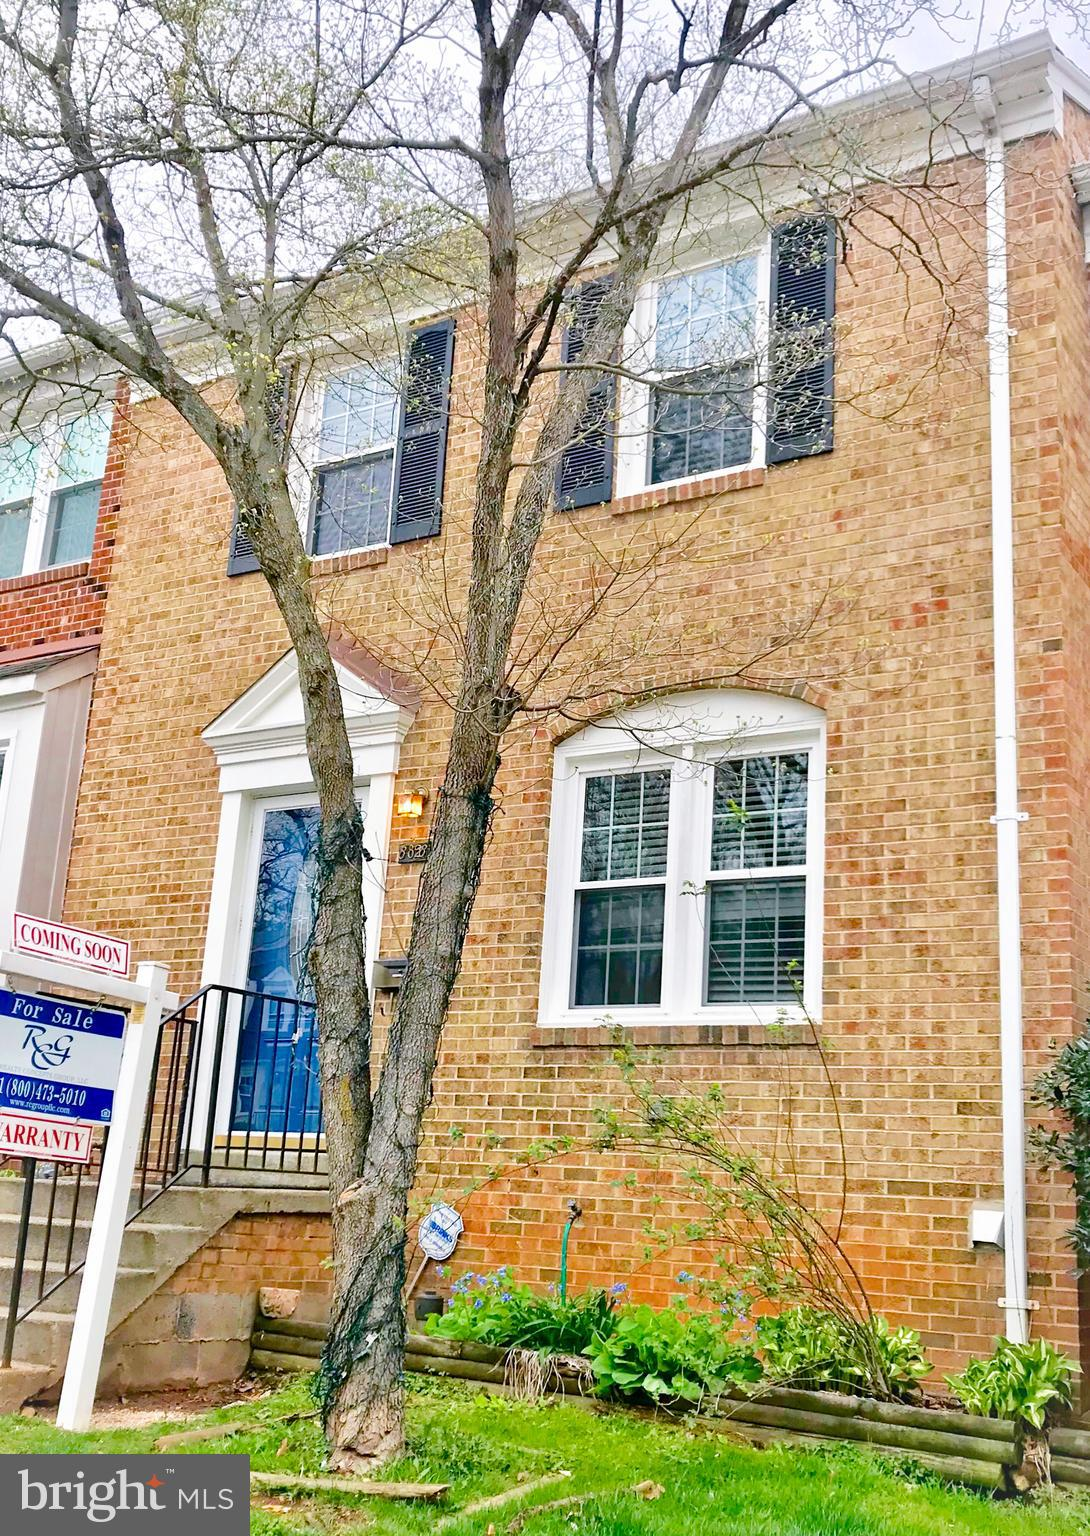 VERY MOTIVATED! Roof and HVAC 6 months old. 3 Bedroom 3.5 Bathroom Townhouse in West Springfield. Features a Laundry Shoot in the Master Bedroom, Completed Basement with Full Bathroom, Enclosed Sun Room and more! Walking distance to nearby Shopping Centers.  Commuter Friendly.